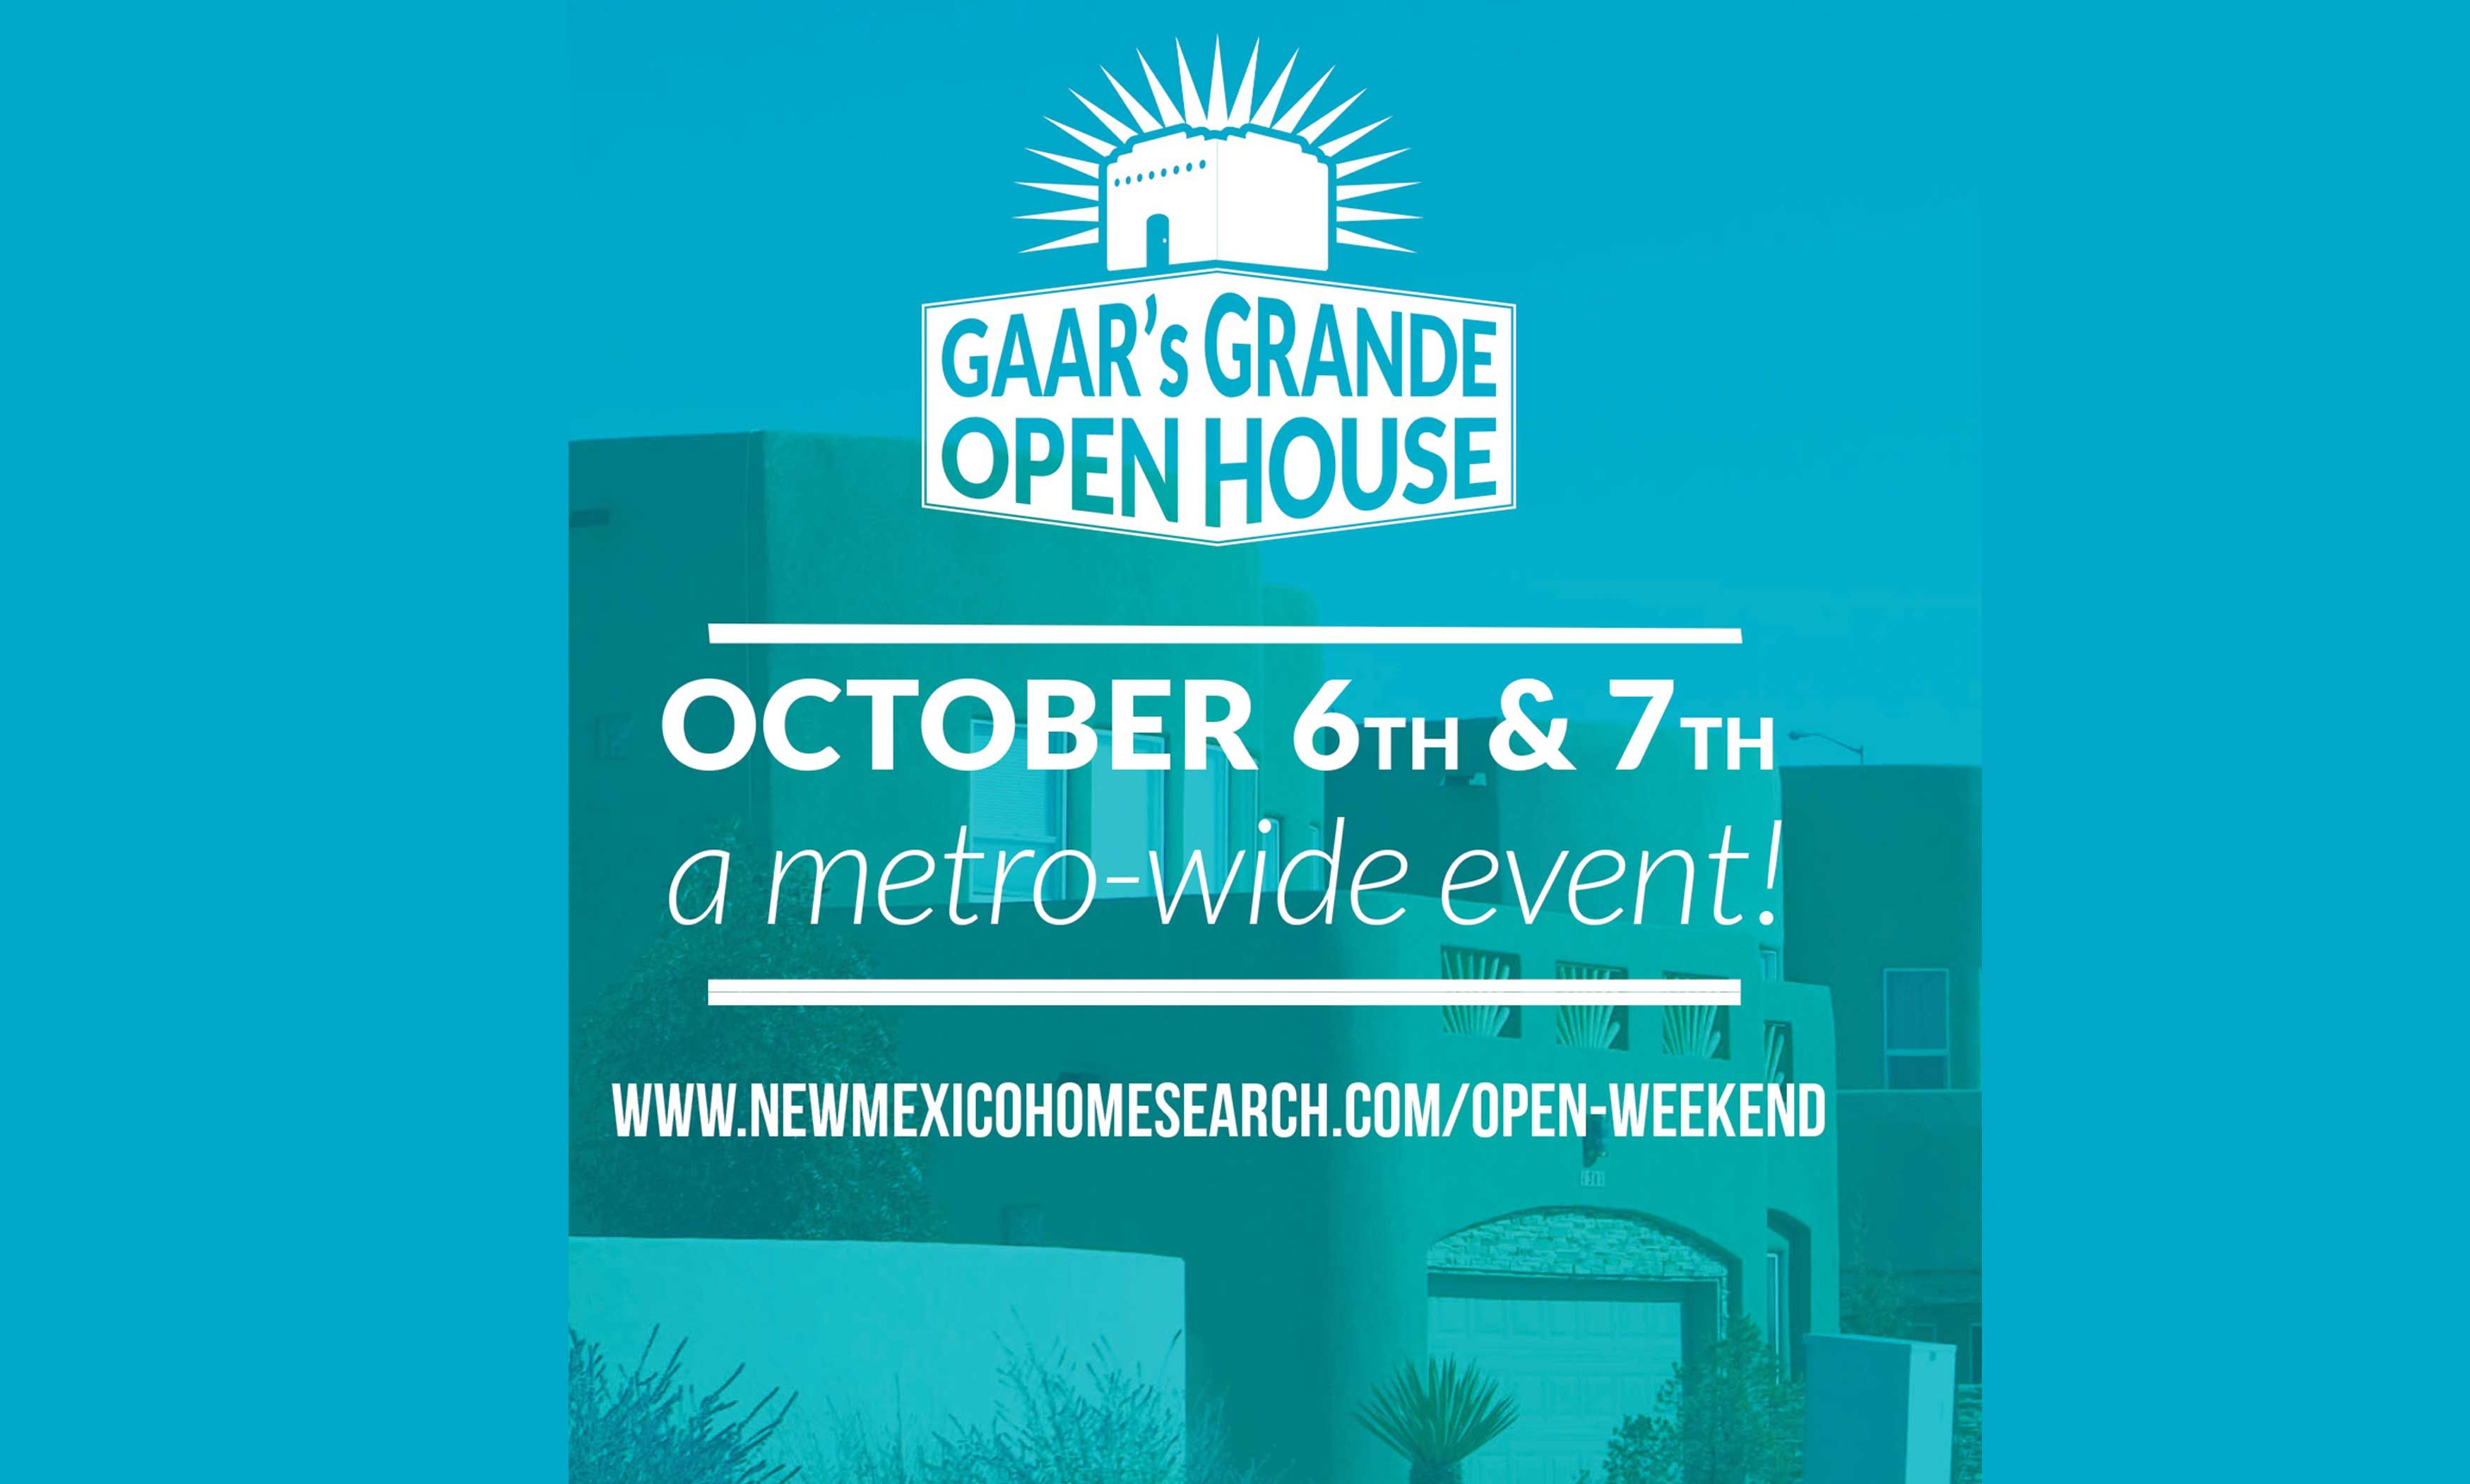 Get your Fall Listings Ready for the Grande Open House Weekend